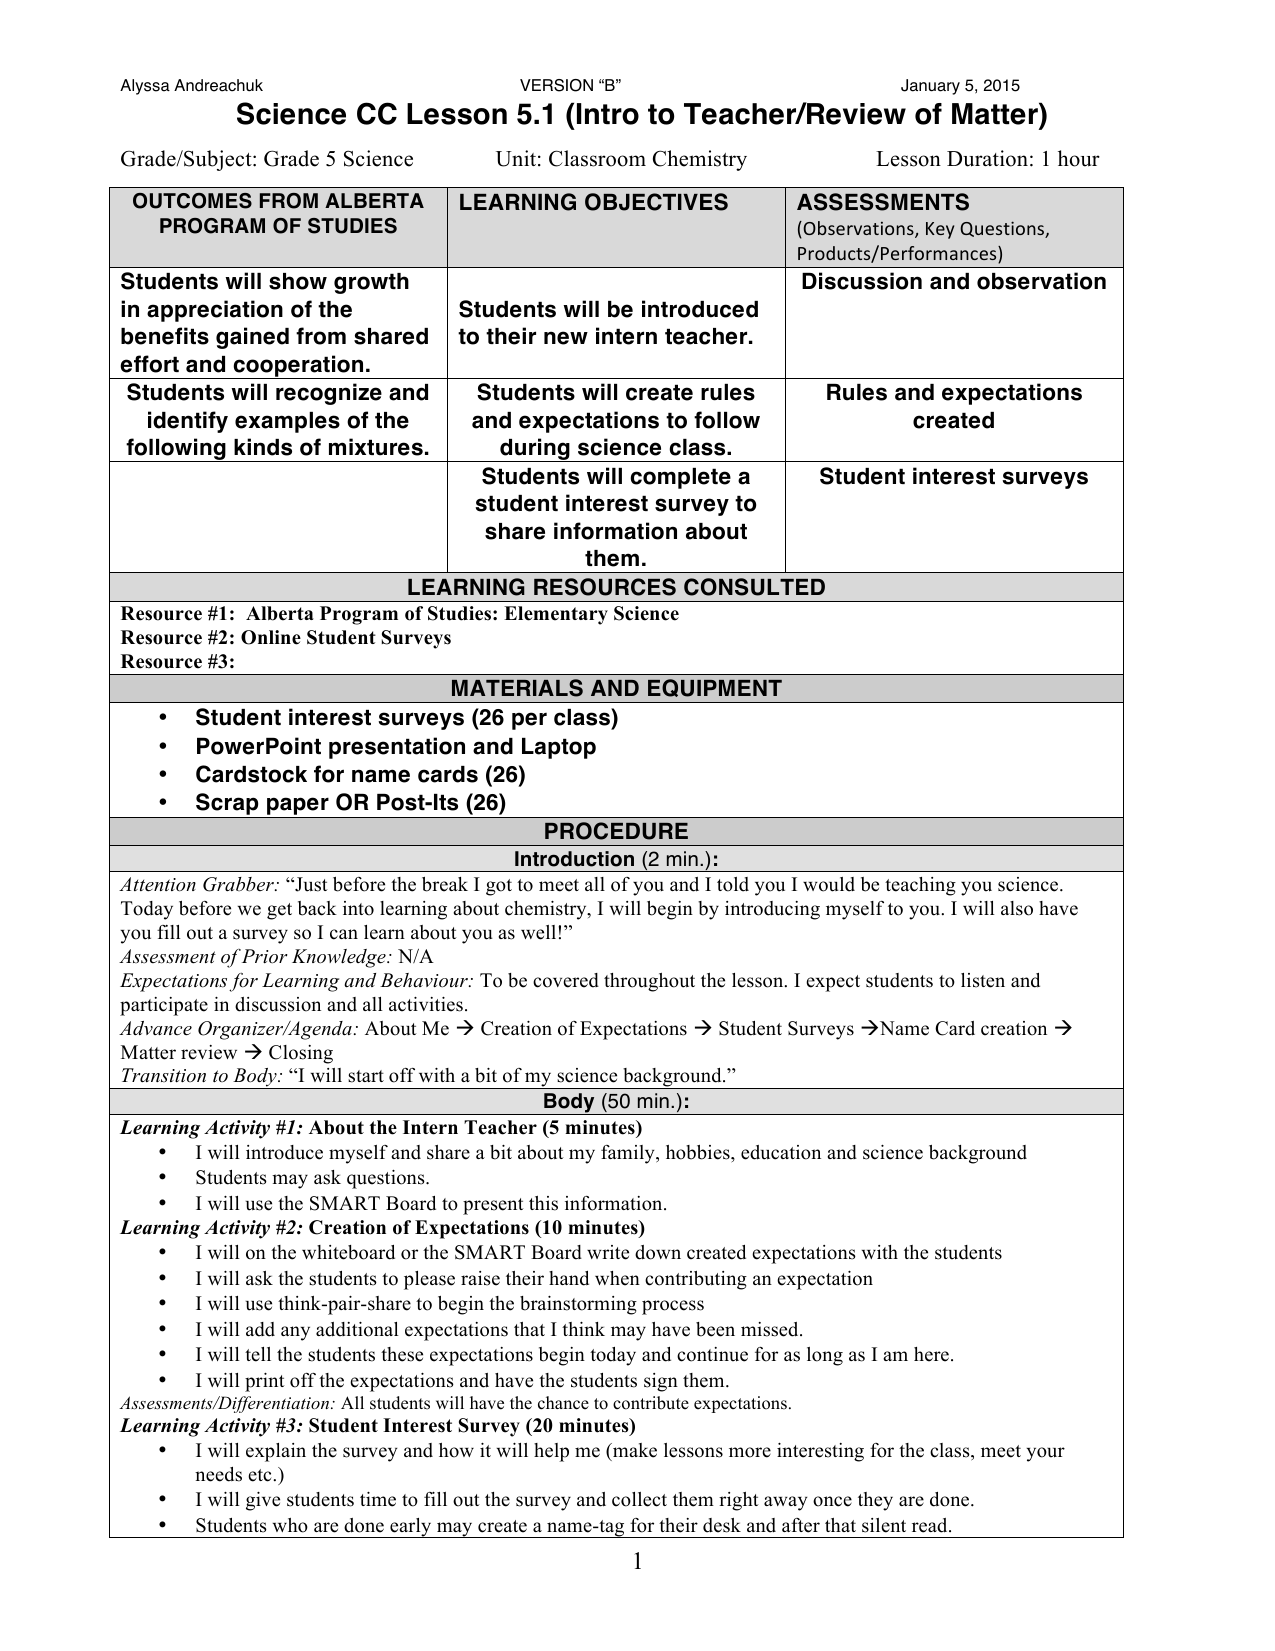 Worksheets Bill Nye Magnetism Worksheet grade 5 classroom chemistry lesson plans resource preview preview